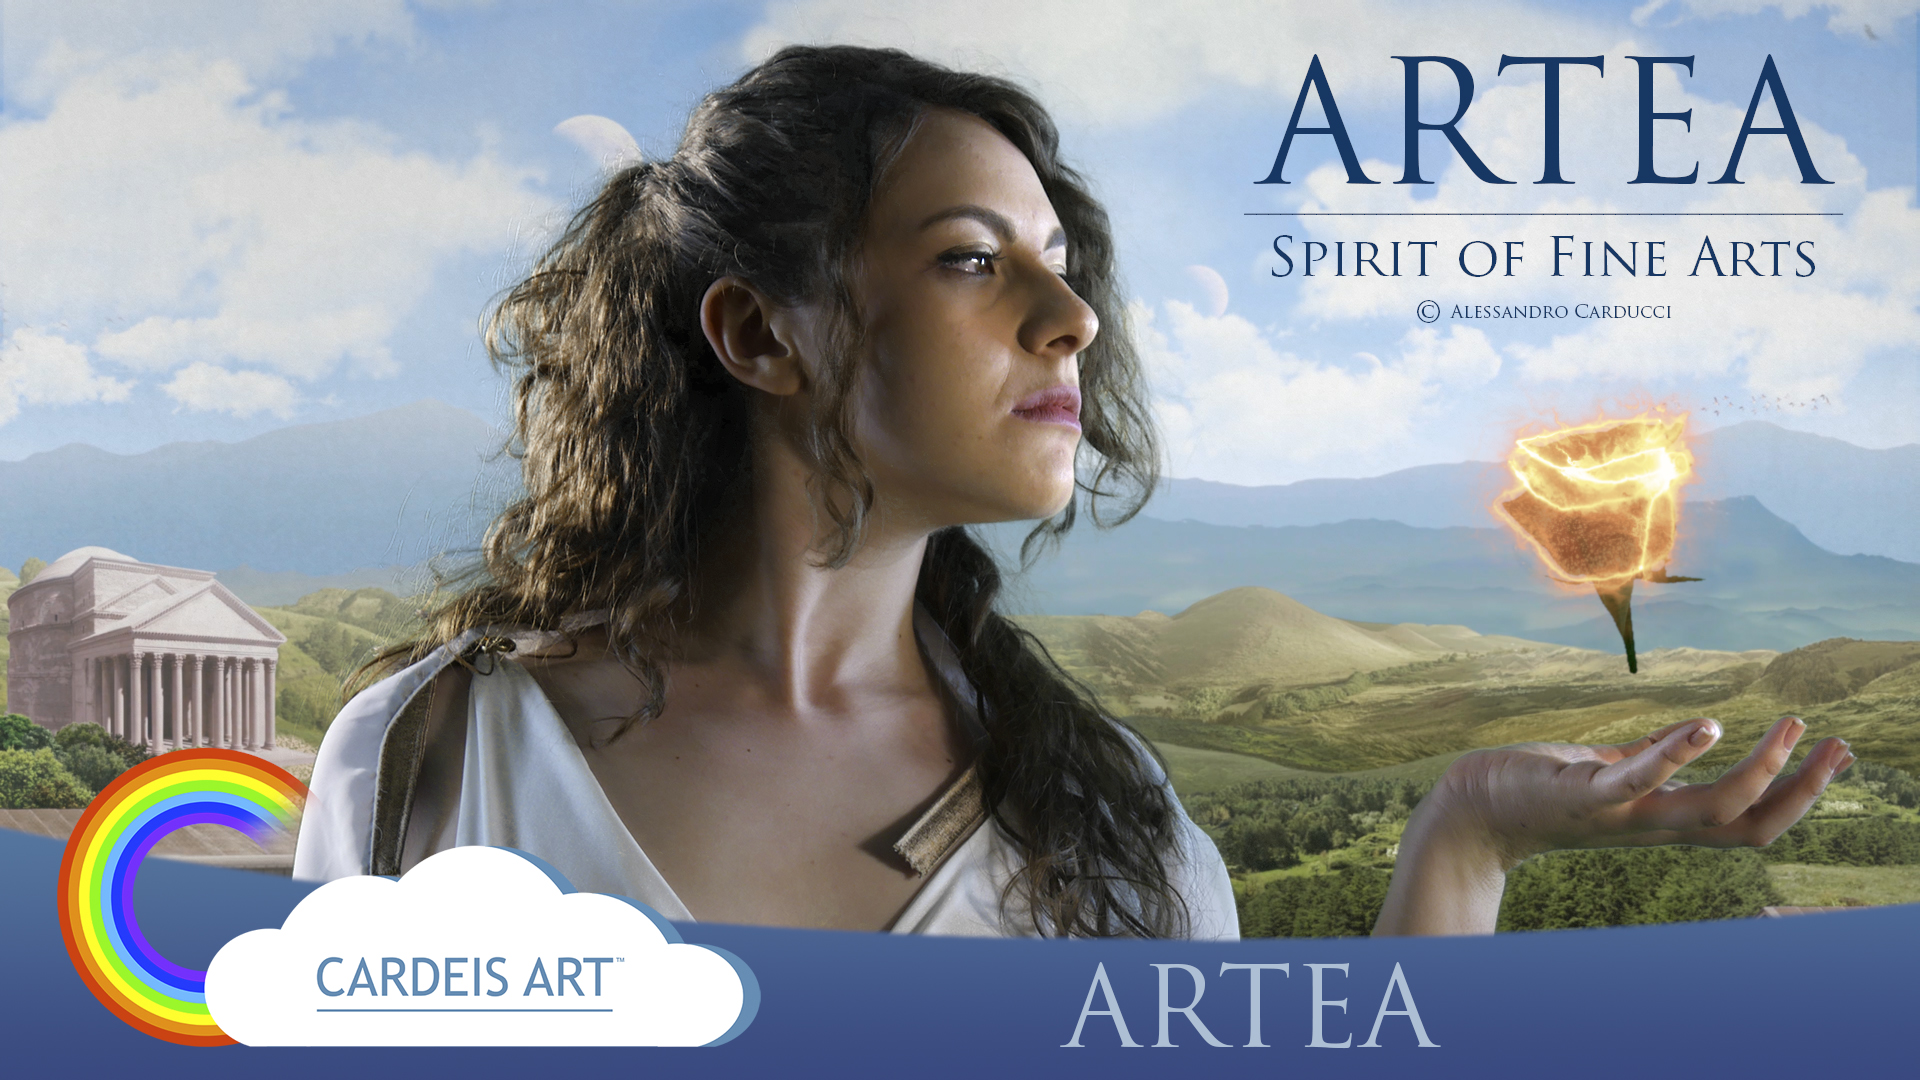 Arsea Spirit of Fine Arts